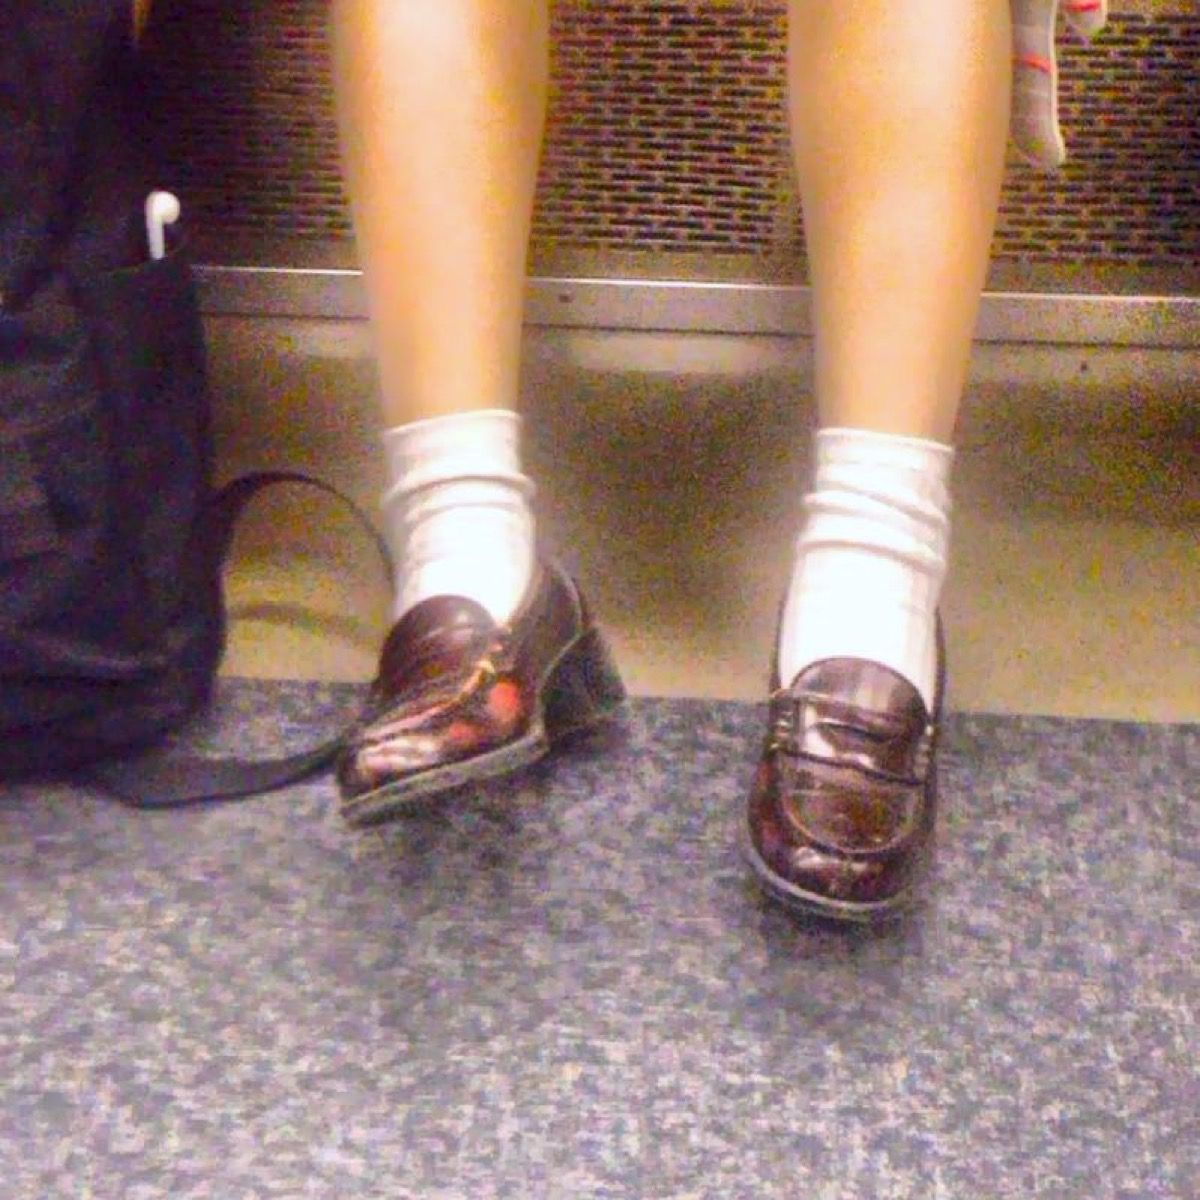 A Pair of Penny Loafers